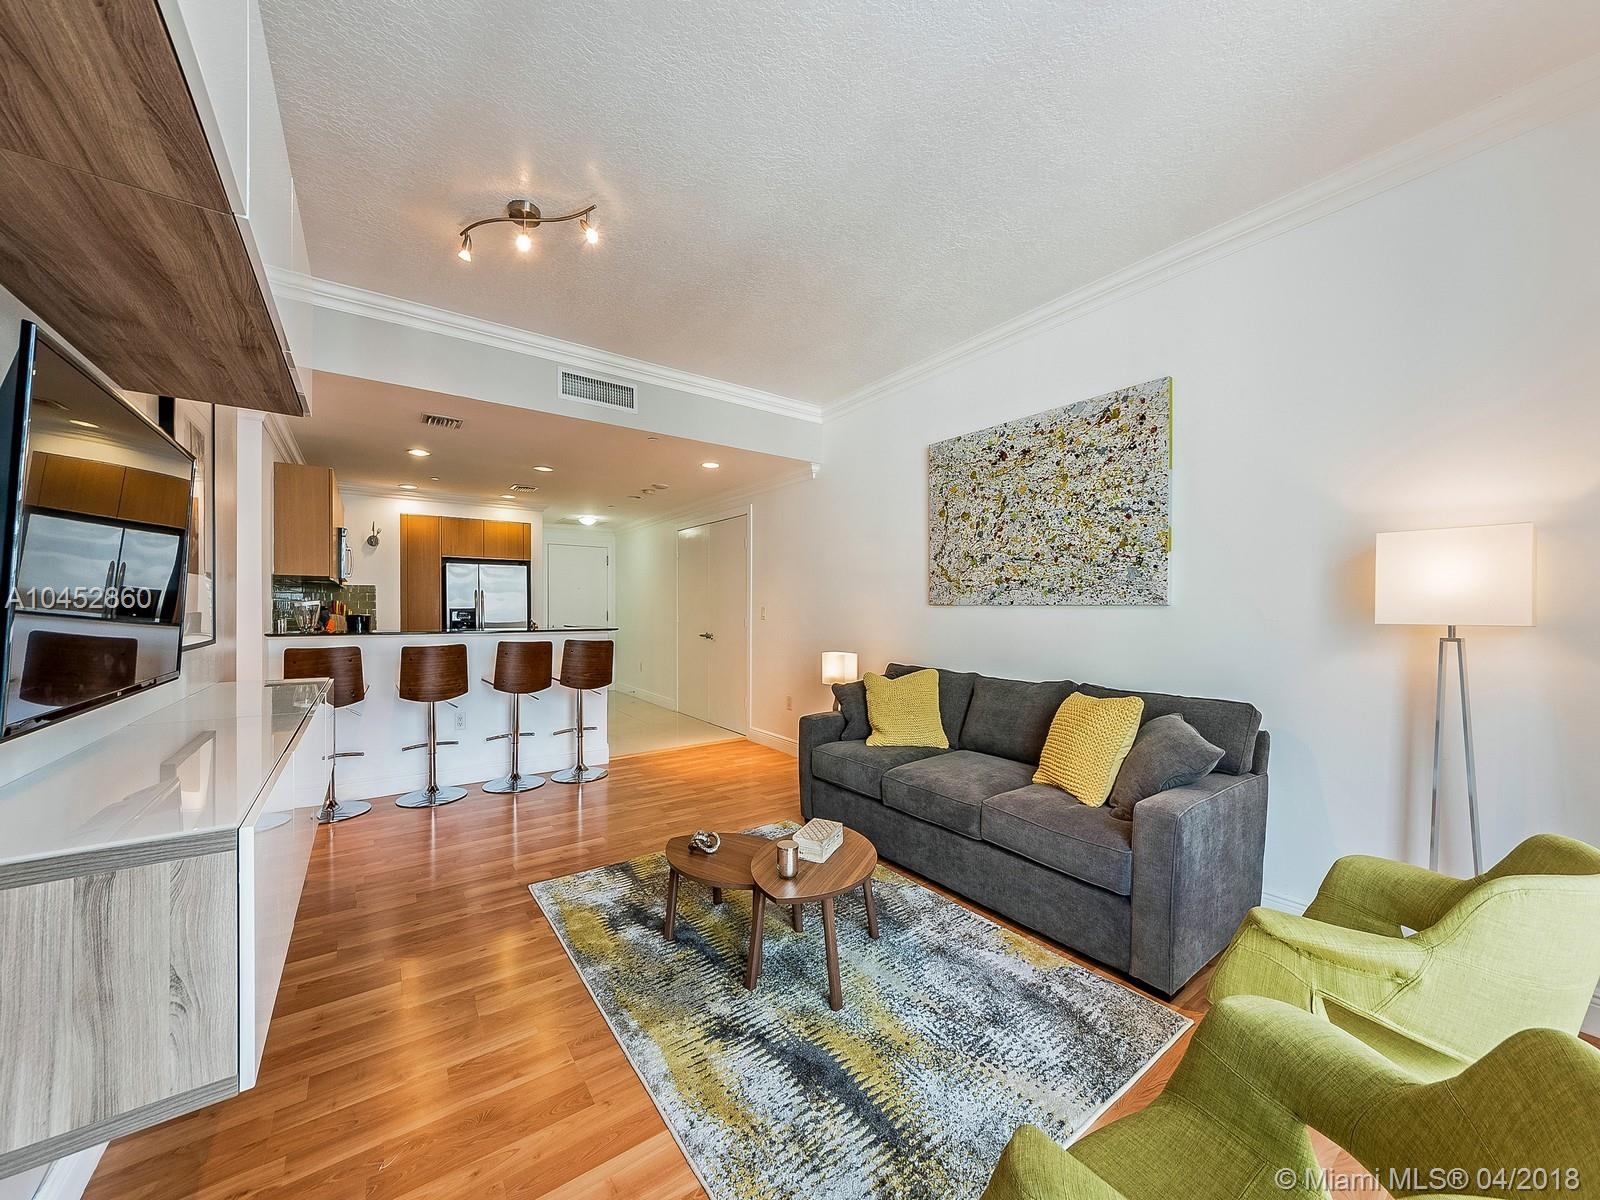 Great Investment Opportunity! Call listing agent for details on prior rental history. Corner unit 2/2 at 1060 Brickell ready to move in! 1060 Brickell is in the heart of Brickell Avenue. Top of the line amenities including virtual golf room, wine/cigar room, gym etc. Restaurants, shopping and more within walking distance. Breath-taking views of Brickell and Downtown Miami Area. Furniture is negotiable.